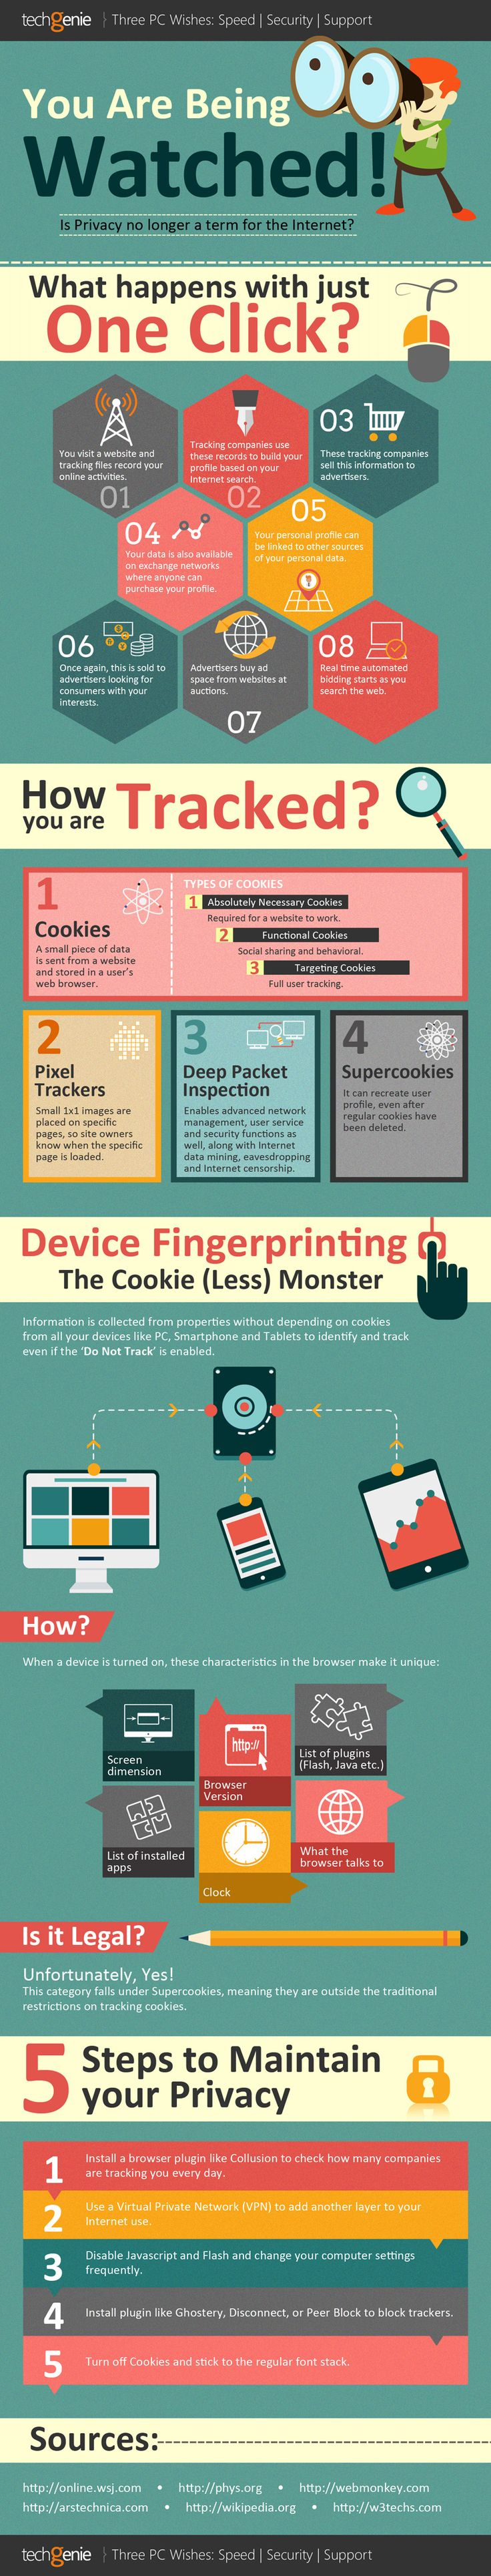 Is Complete Online Privacy Possible?  #infographic #infographics (Computer Tech)